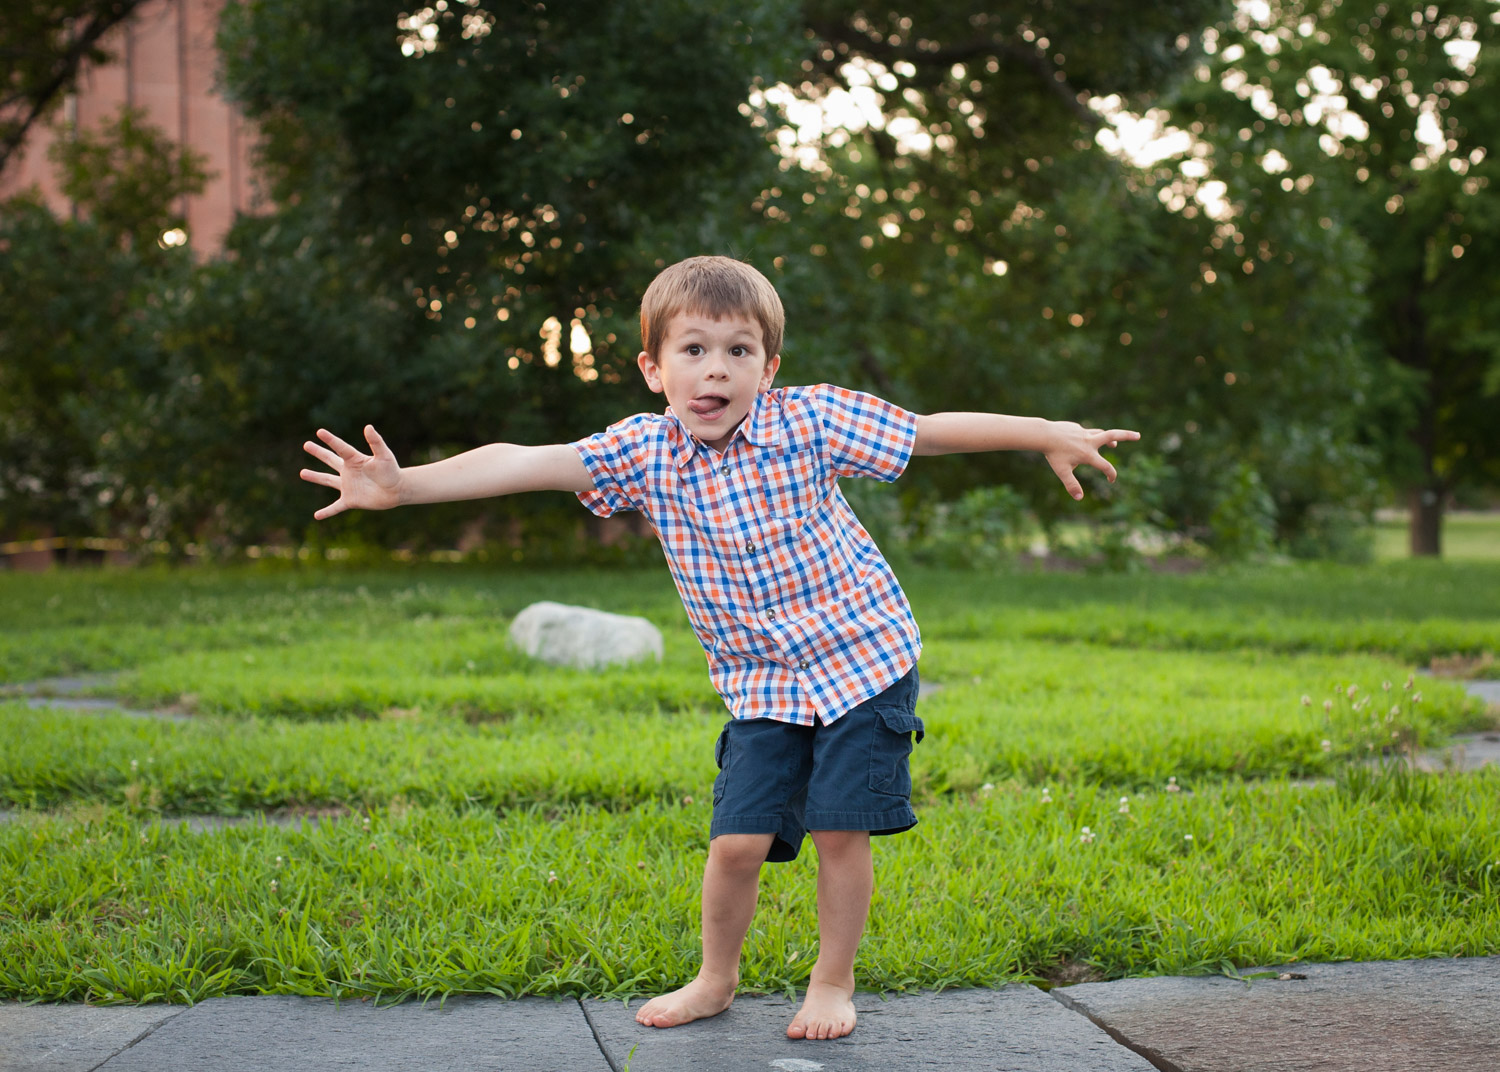 Young boy wearing orange and blue plaid shirt makes a silly face with his arms outstretched.